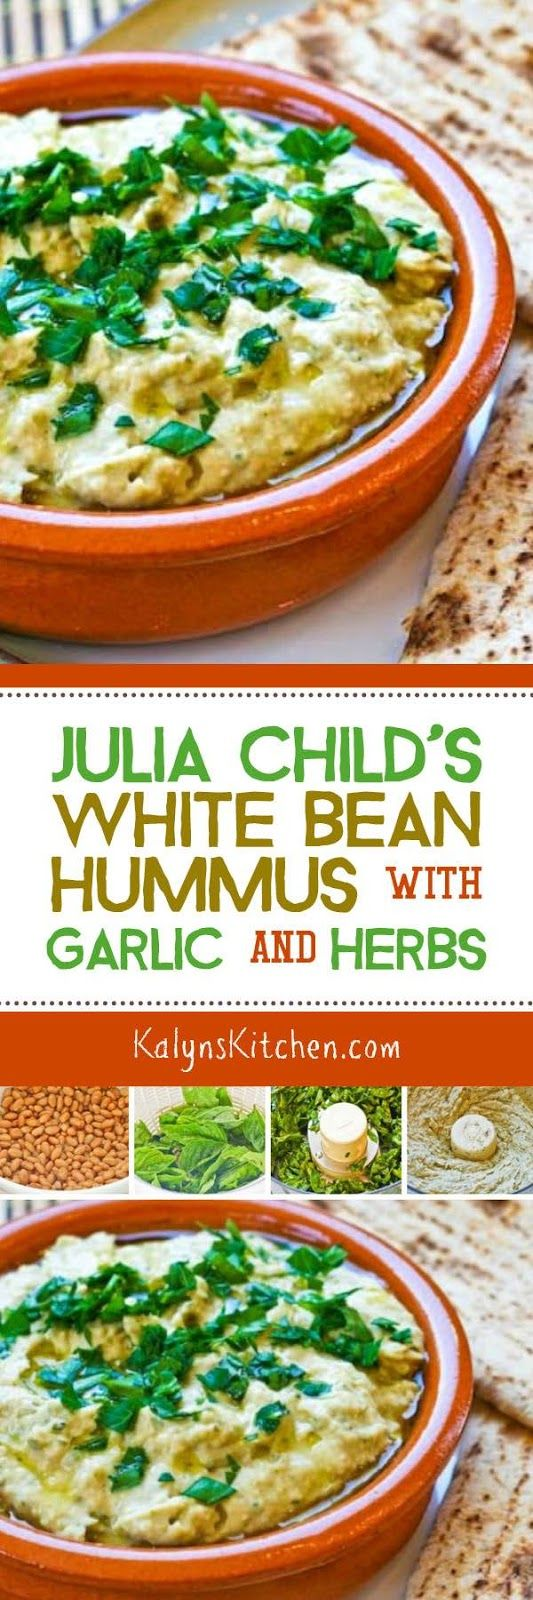 Julia Child's White Bean Hummus with Garlic and Herbs is amazing and will be a hit with everyone, especially people who might not be that fond of garbanzo beans. And this amazing white bean hummus is low-glycemic, dairy-free, meatless, and vegan, and if you skip the pita and use veggie dippers it's South Beach Diet Phase One and gluten-free! [found on KalynsKitchen.com]